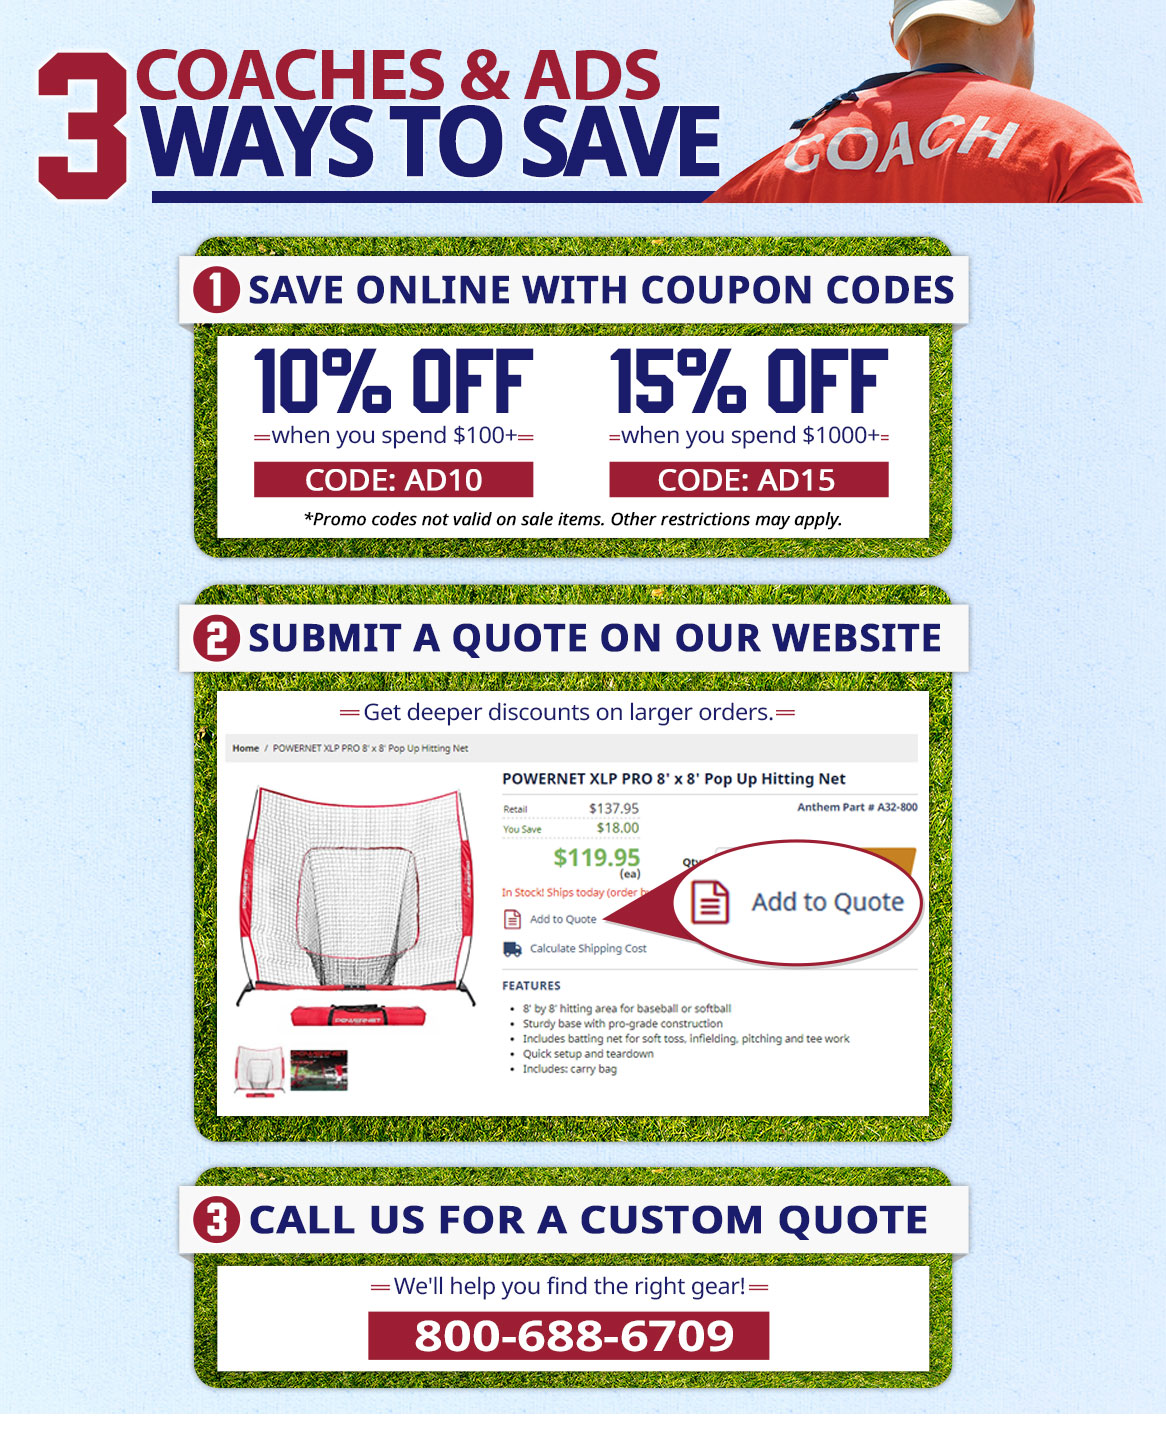 Coaches & ADs, save 10% on orders of $100 with promo code: AD10. Save 15% on orders of $1000+ with promo code: AD15.